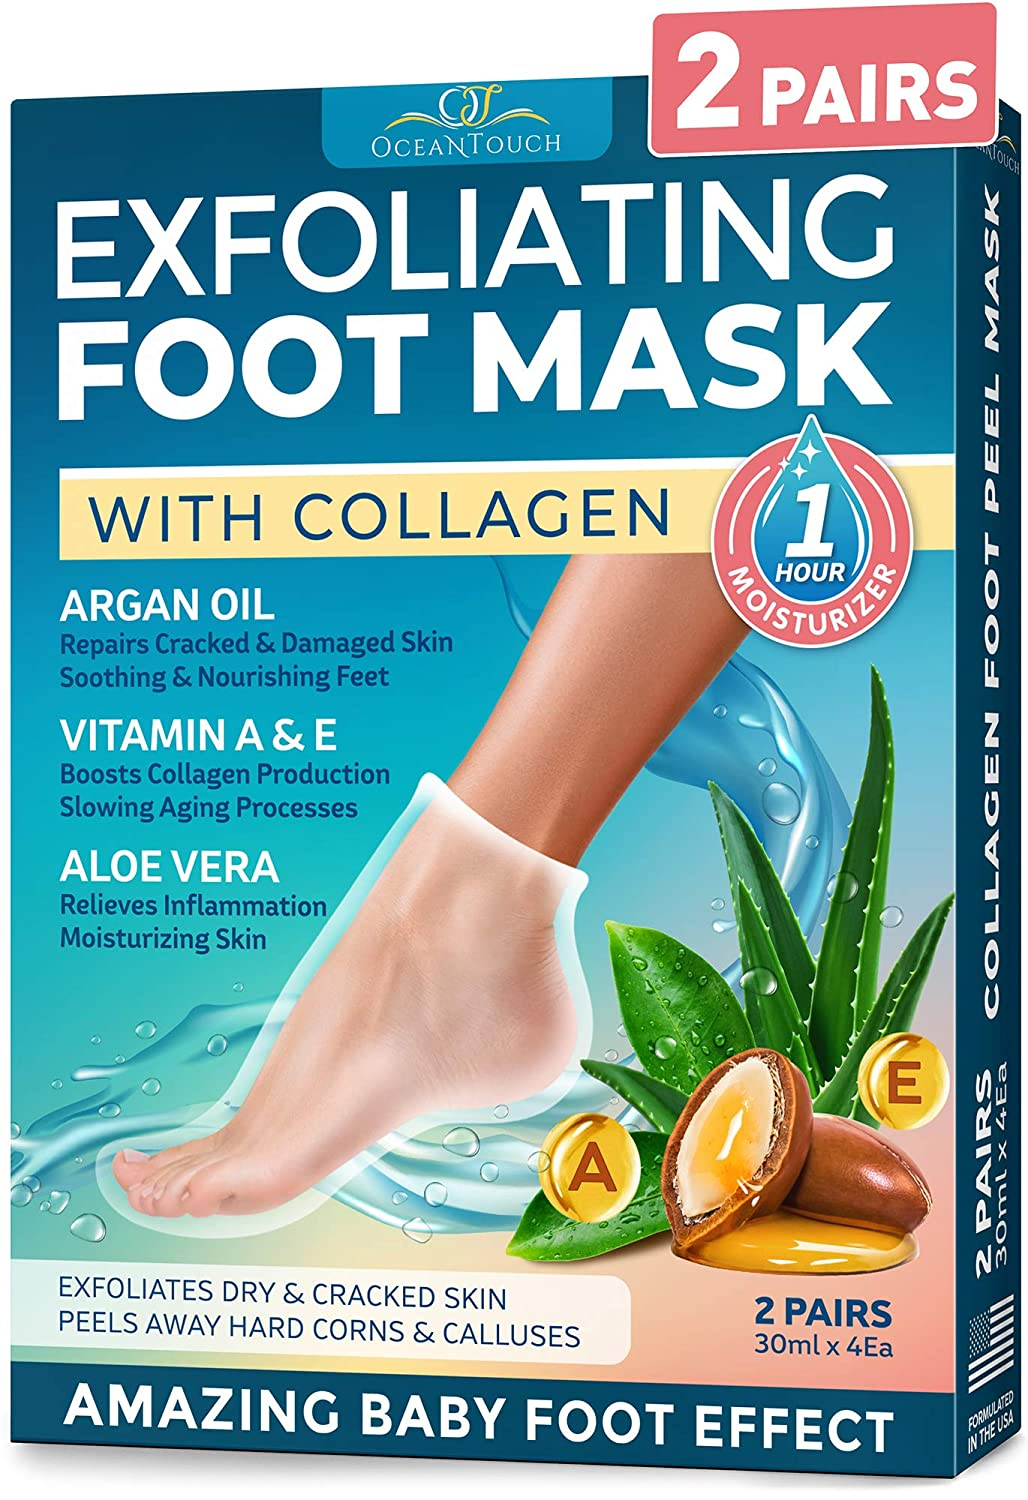 Foot Peel Mask - 2 Pack of Baby Soft Peeling Masks - for Dead Skin & Dry Feet - Exfoliating Masks with Argan Oil & Collagen - Cracked Heels & Rough Calluses Remover - Smooth Foot Repair